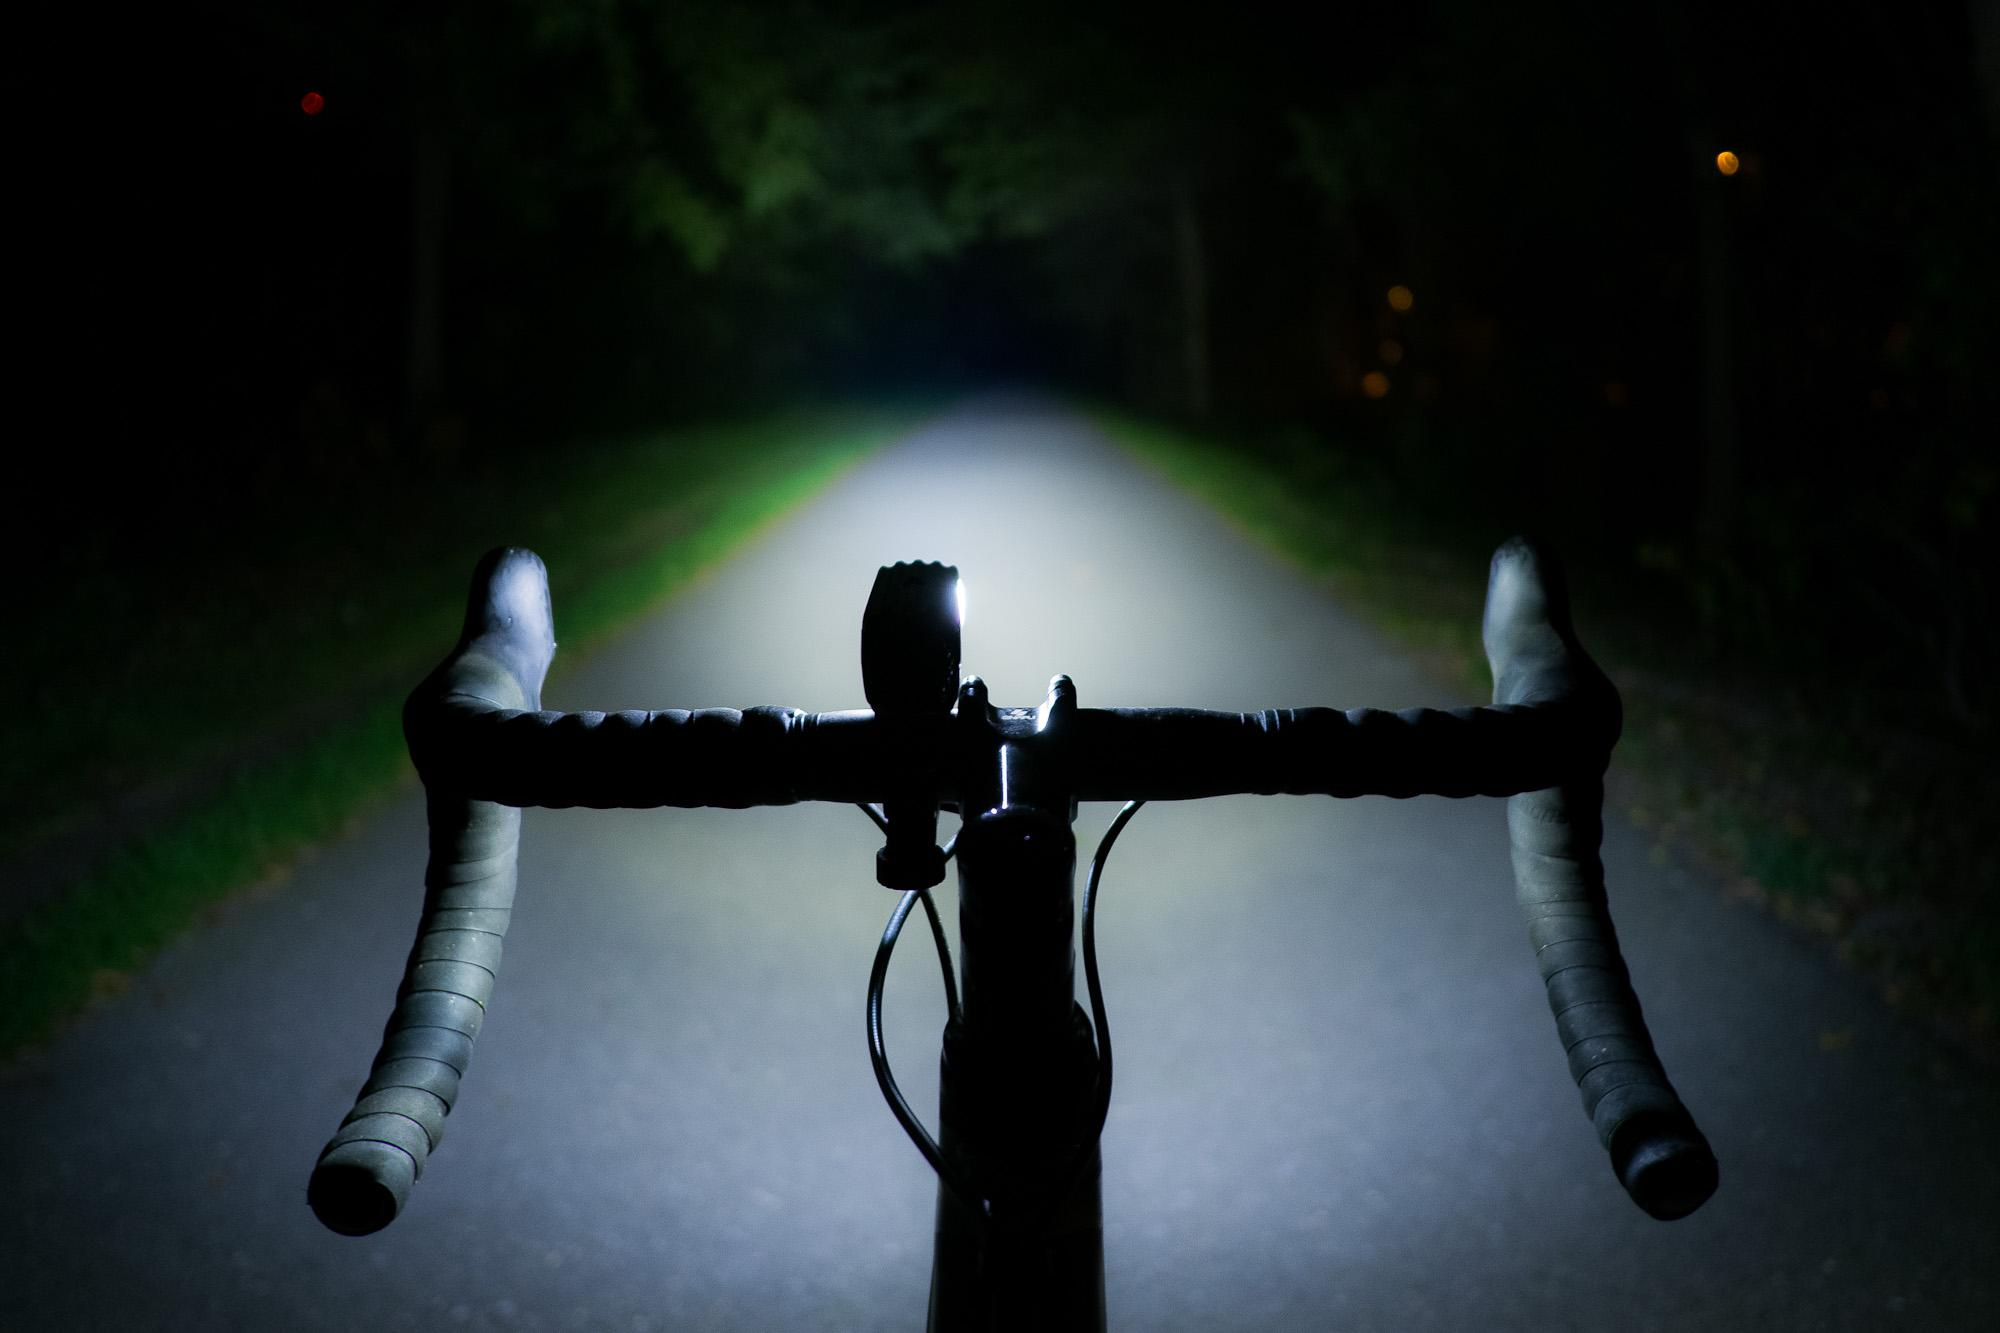 Rider view down a pitch black bike path